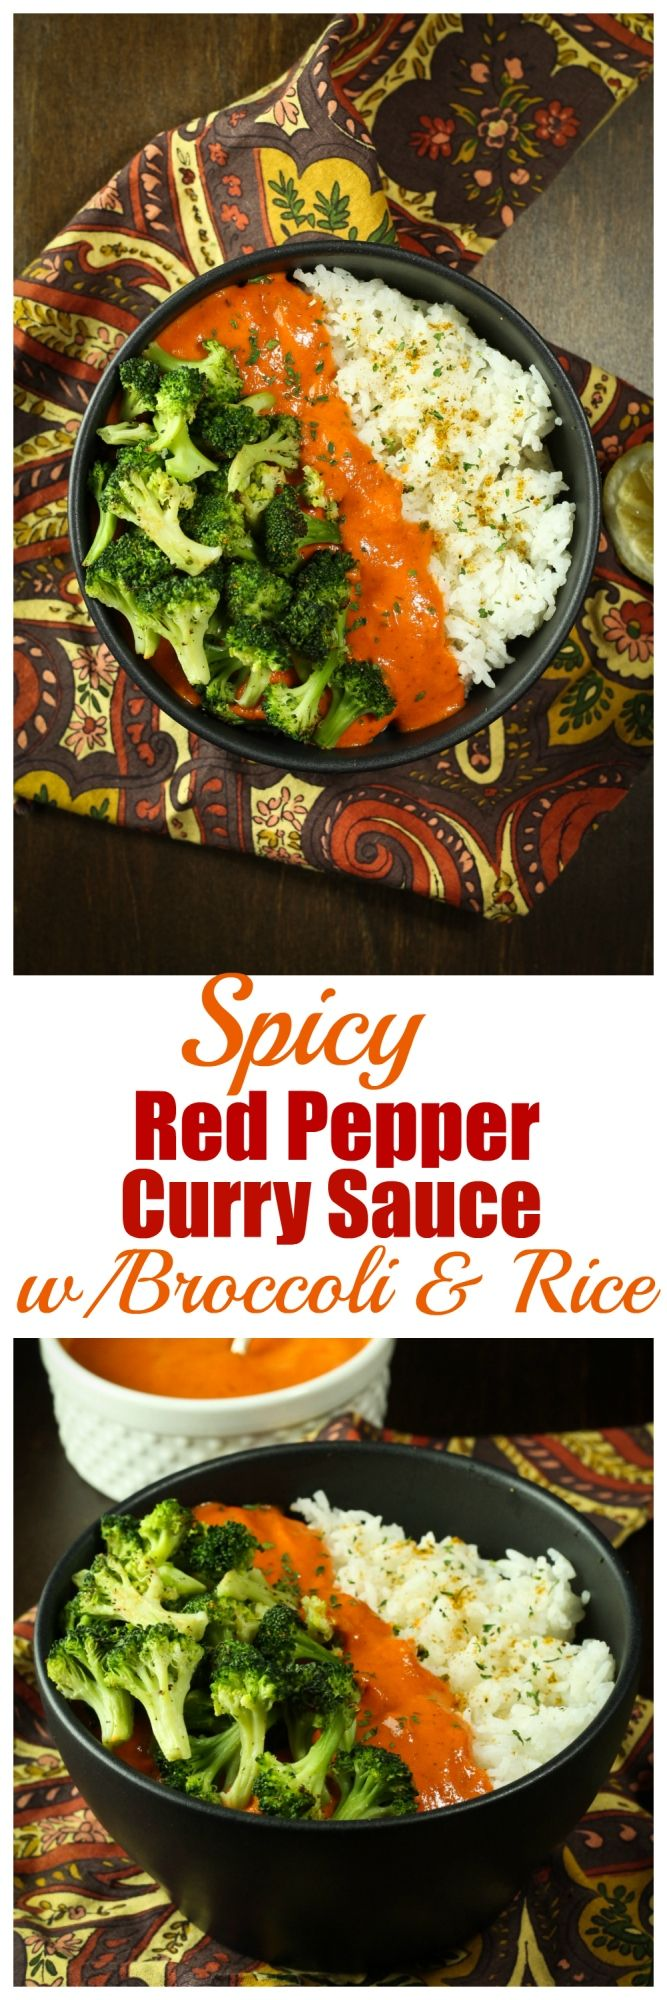 A Spicy Red Pepper Curry Sauce made with roasted red bell peppers and served over fluffy white rice and roasted broccoli. So incredibly comforting and completely dairy-free and oil-free.